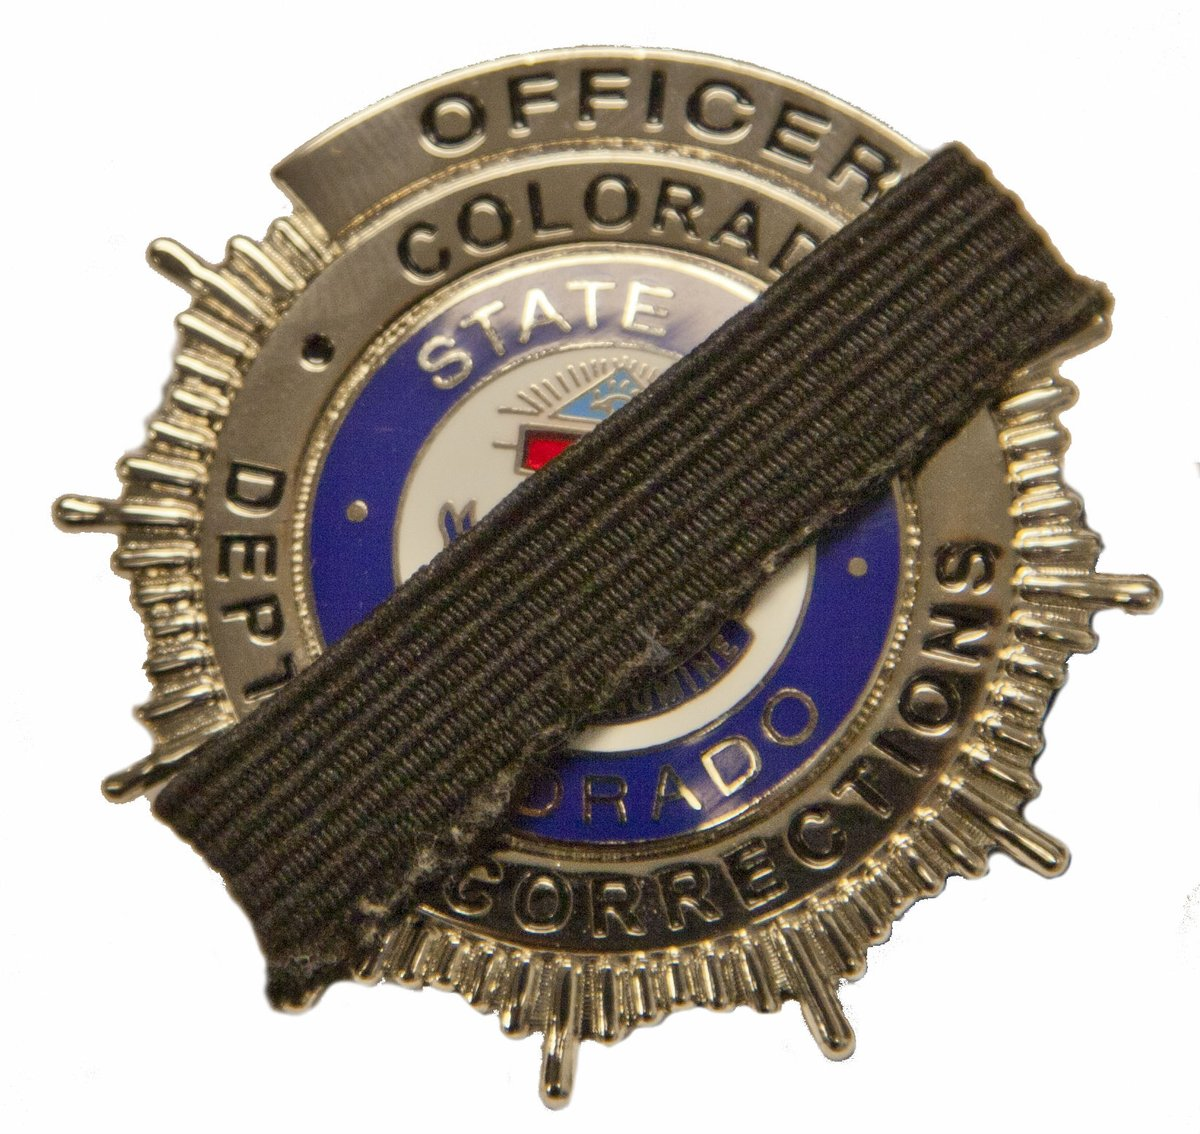 On Peace Officers Memorial Day we remember all those who have lost their lives keeping the public safe. These heroes are never forgotten. #PeaceOfficersMemorialDay https://t.co/uNzHpsaf1I